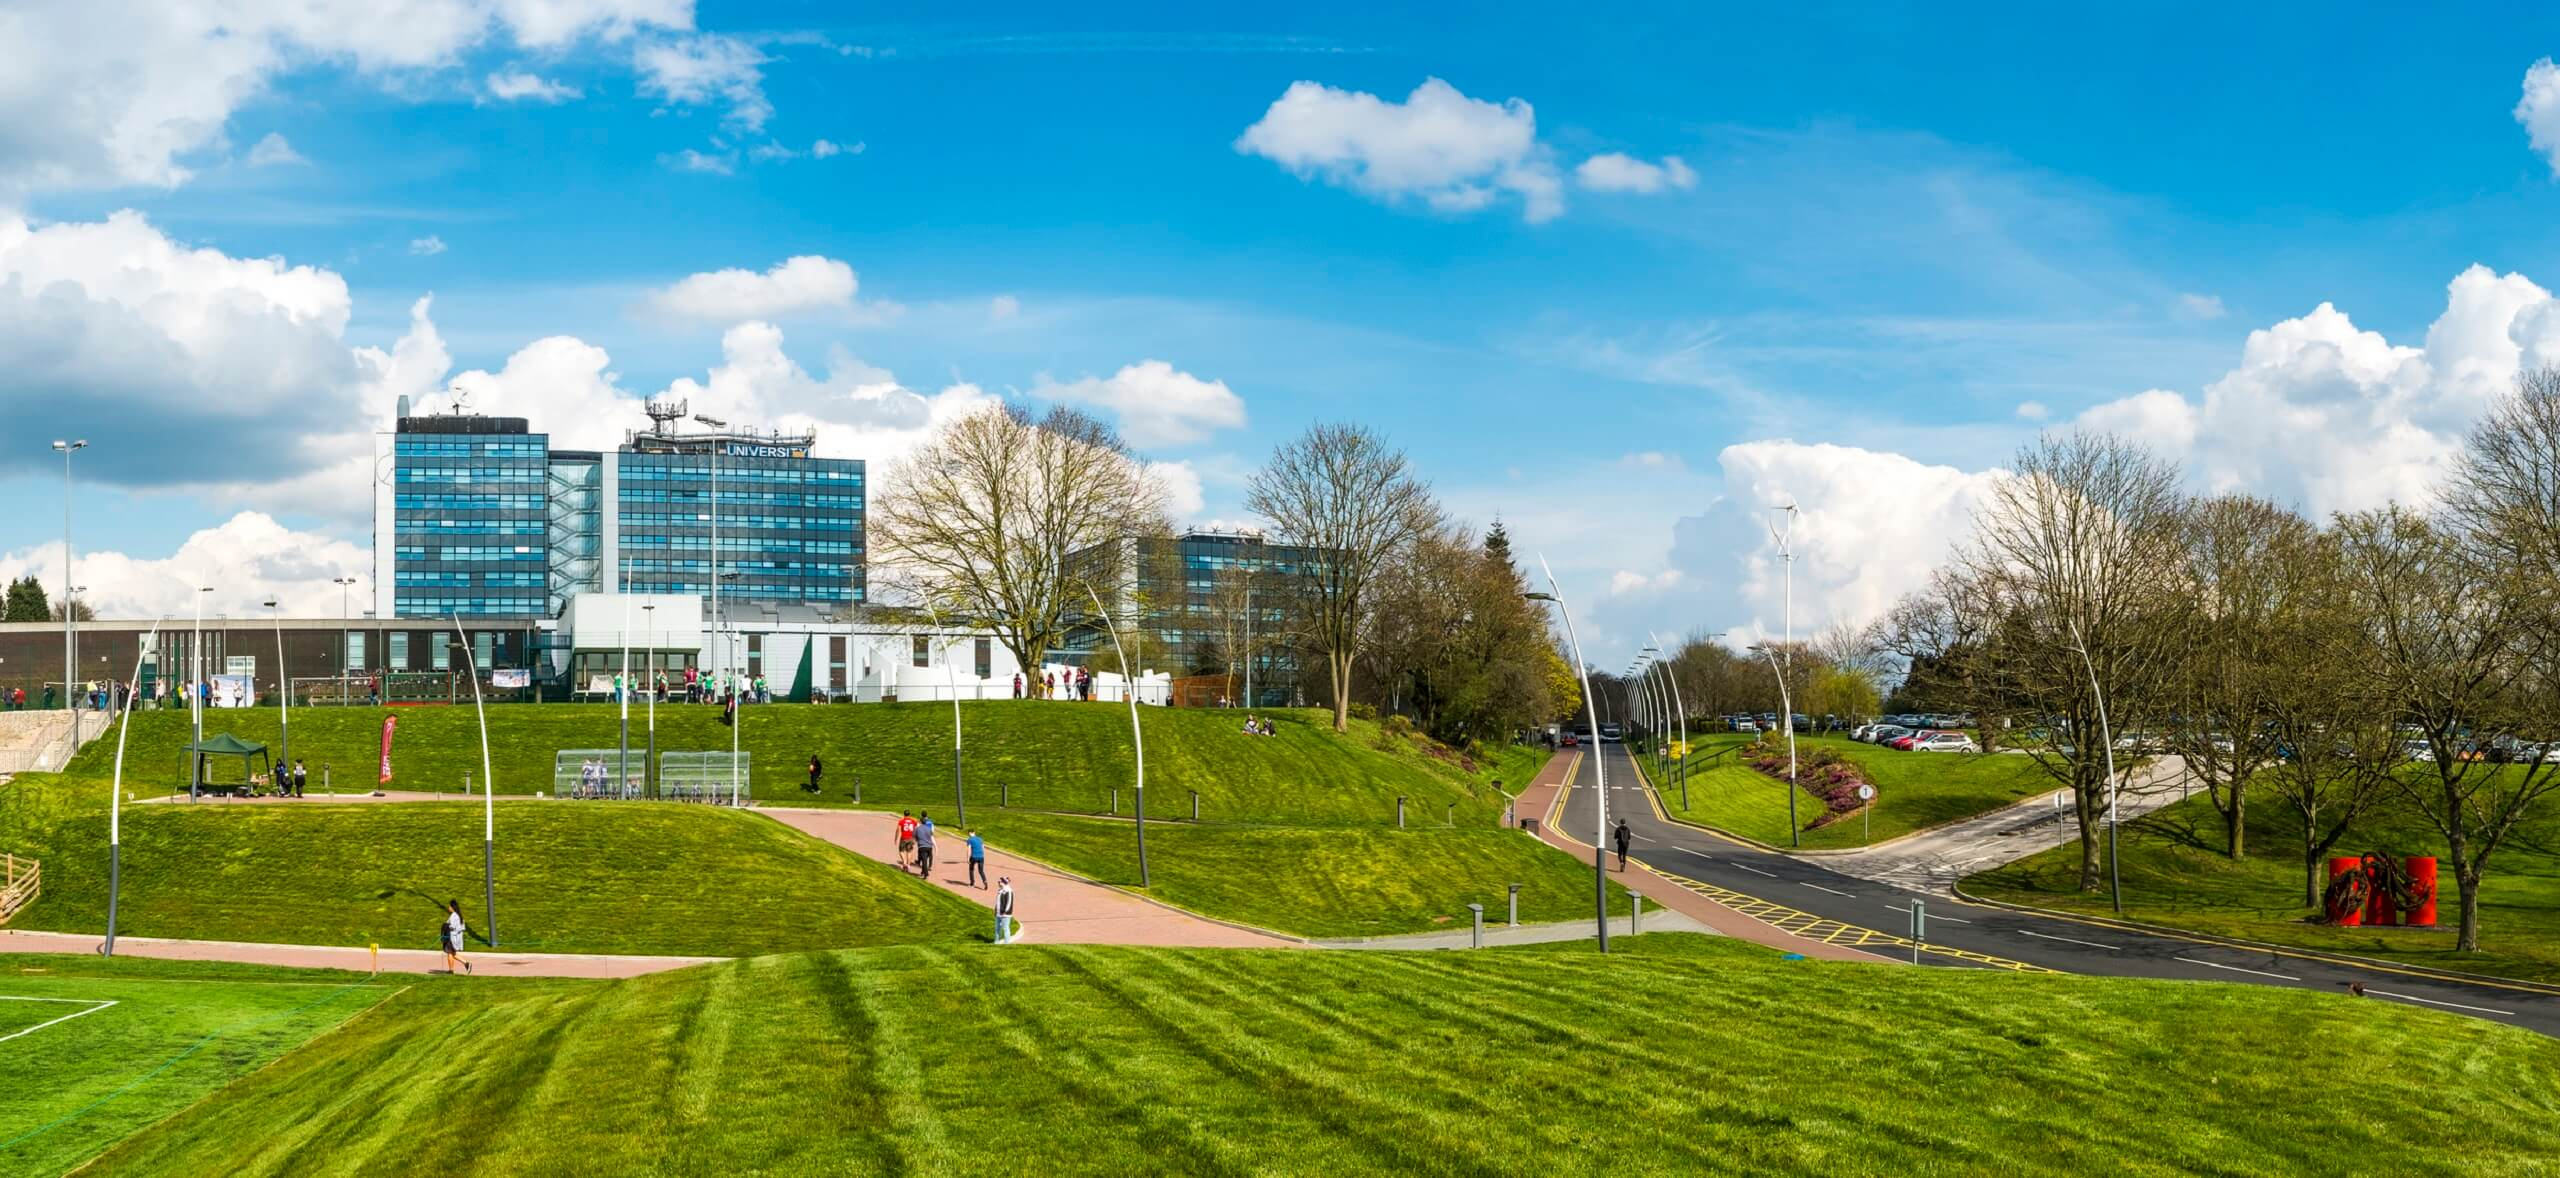 Image of Kedleston Road campus